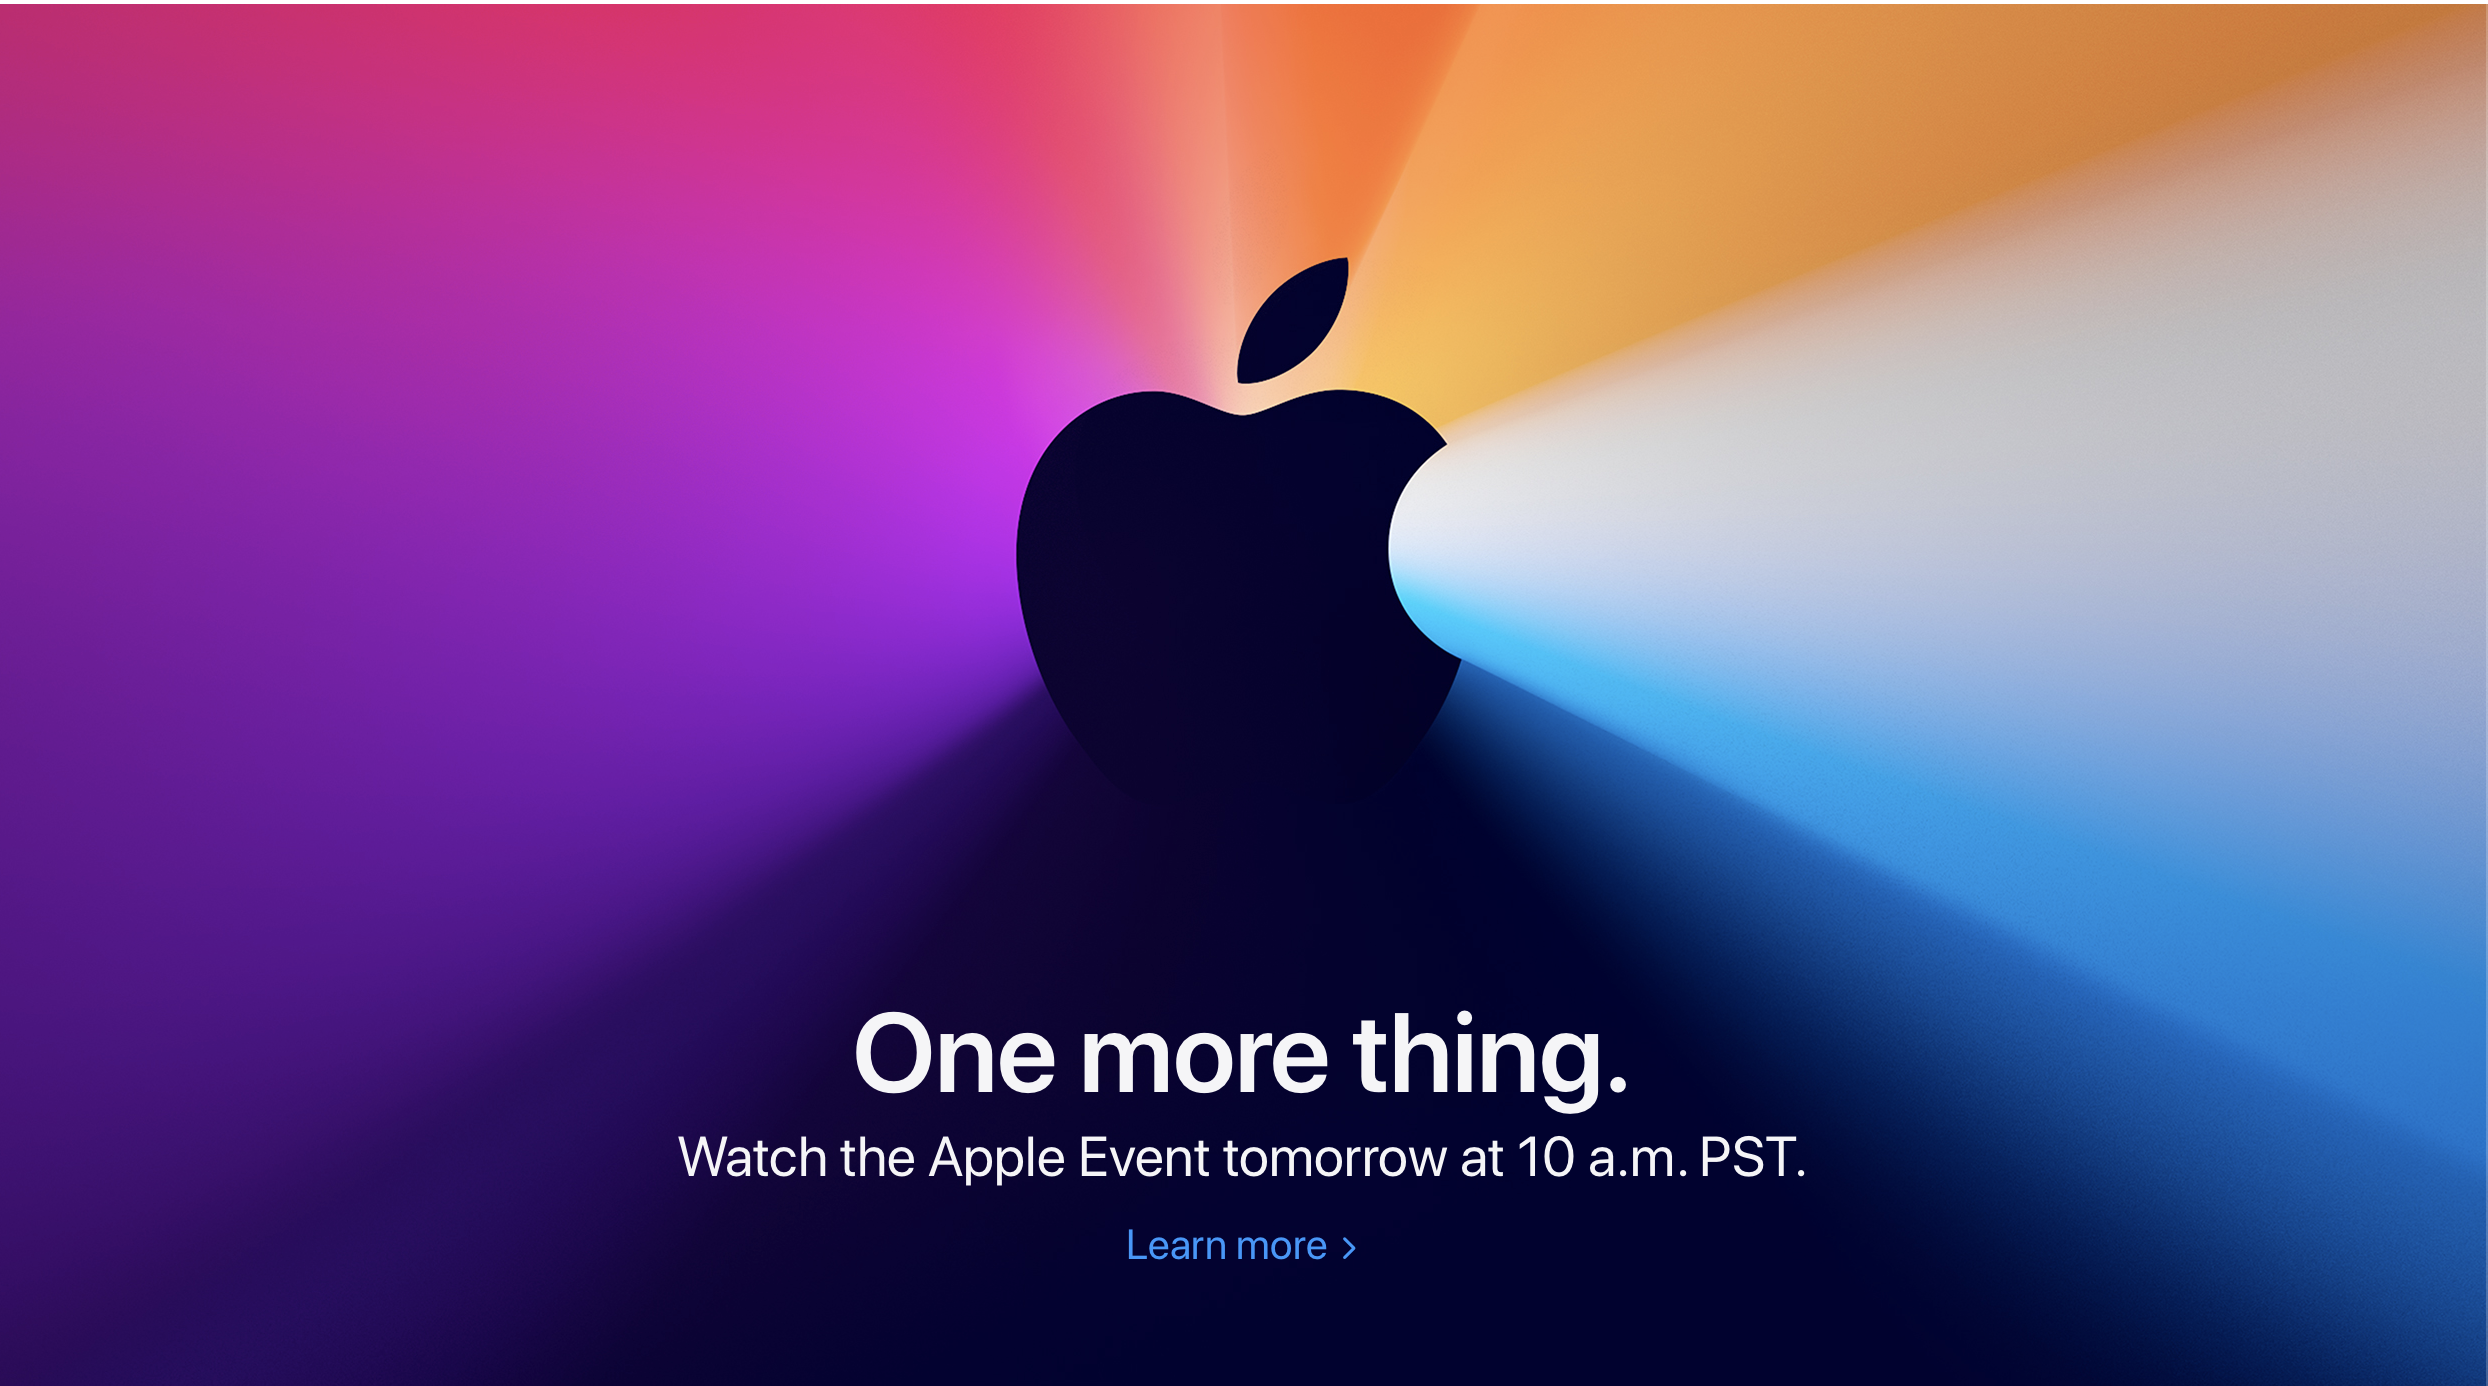 Another Apple Event?